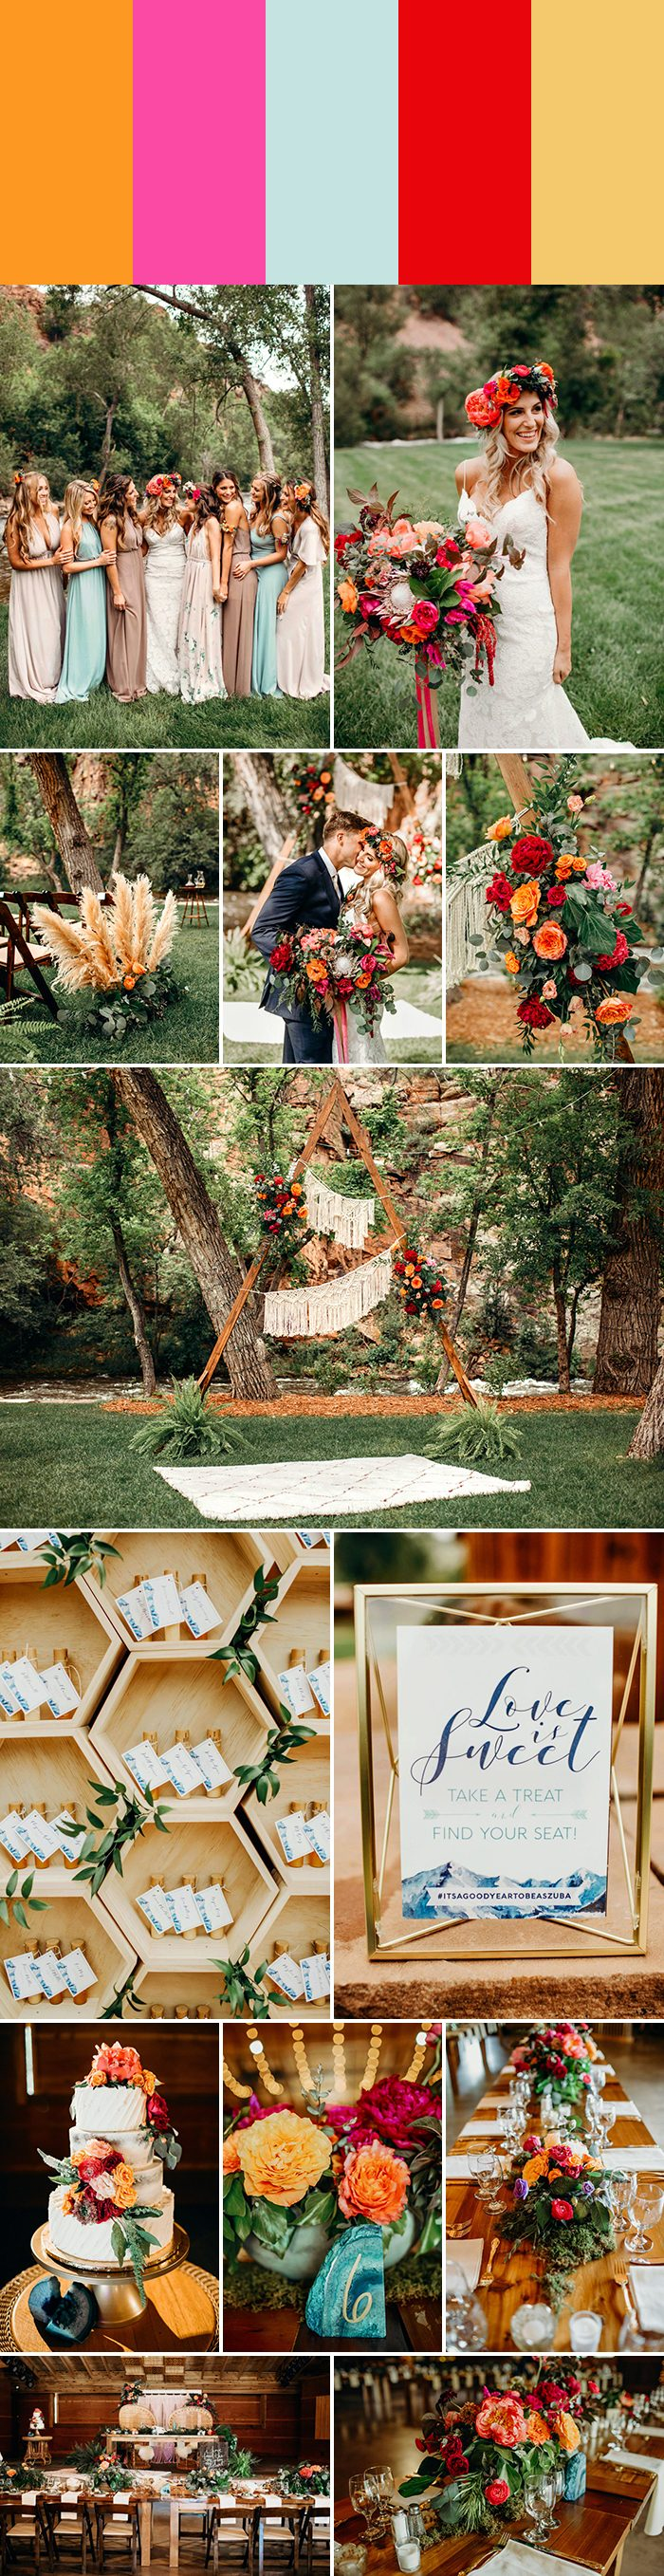 5 Inspiring Spring Wedding Color Palette Ideas | Junebug